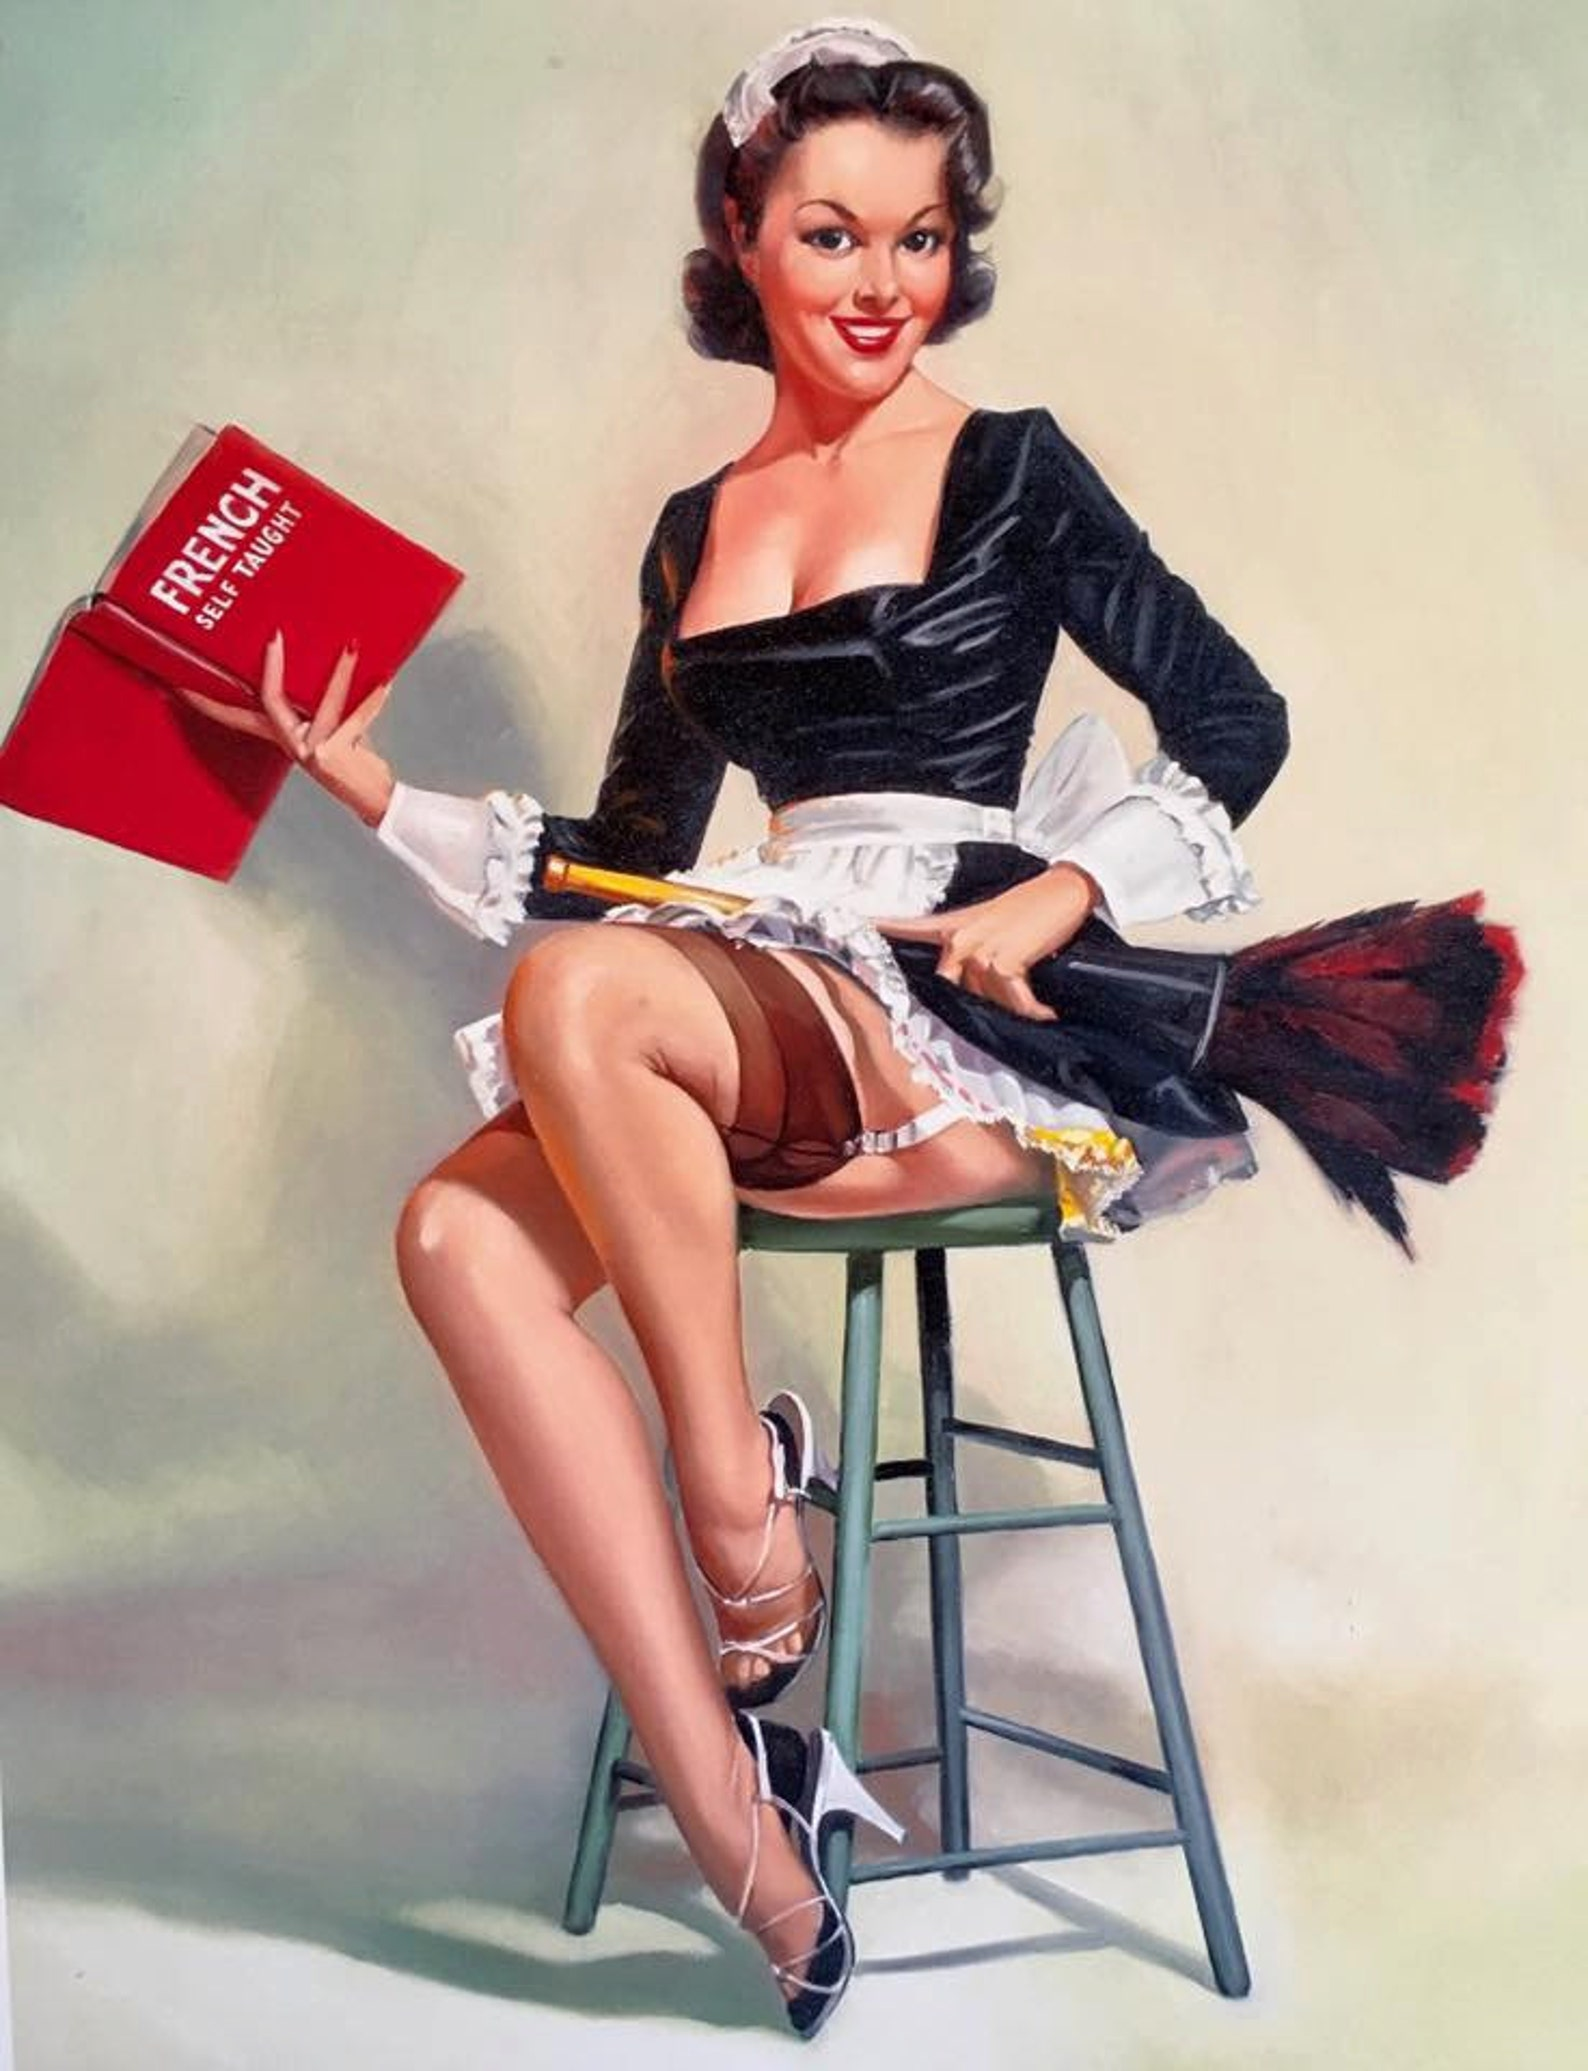 Vintage retro sun tan pinup girl poster by rbent